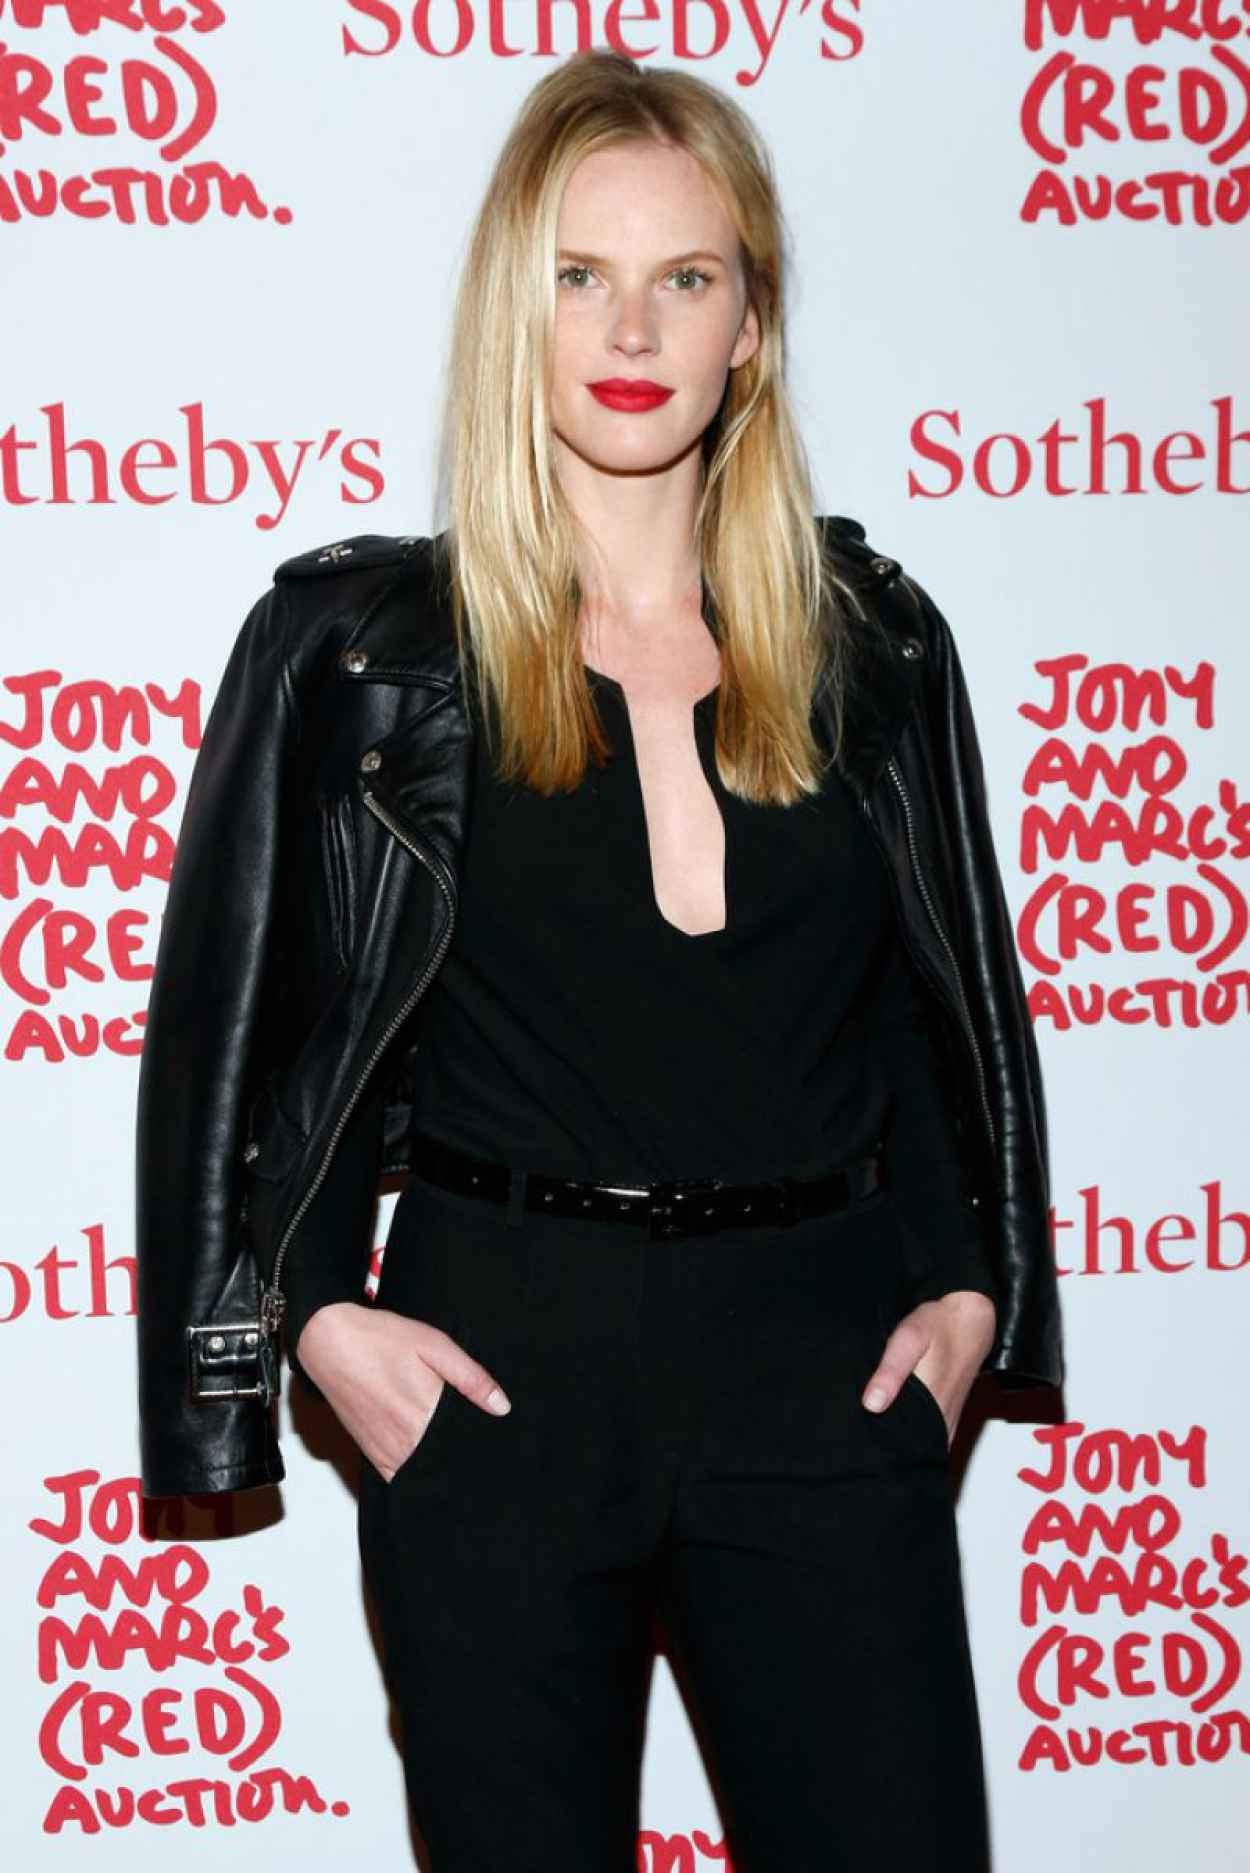 Anne Vyalitsyna Attends Jony & Marcs (RED) Auction in New York City, November 2015-1